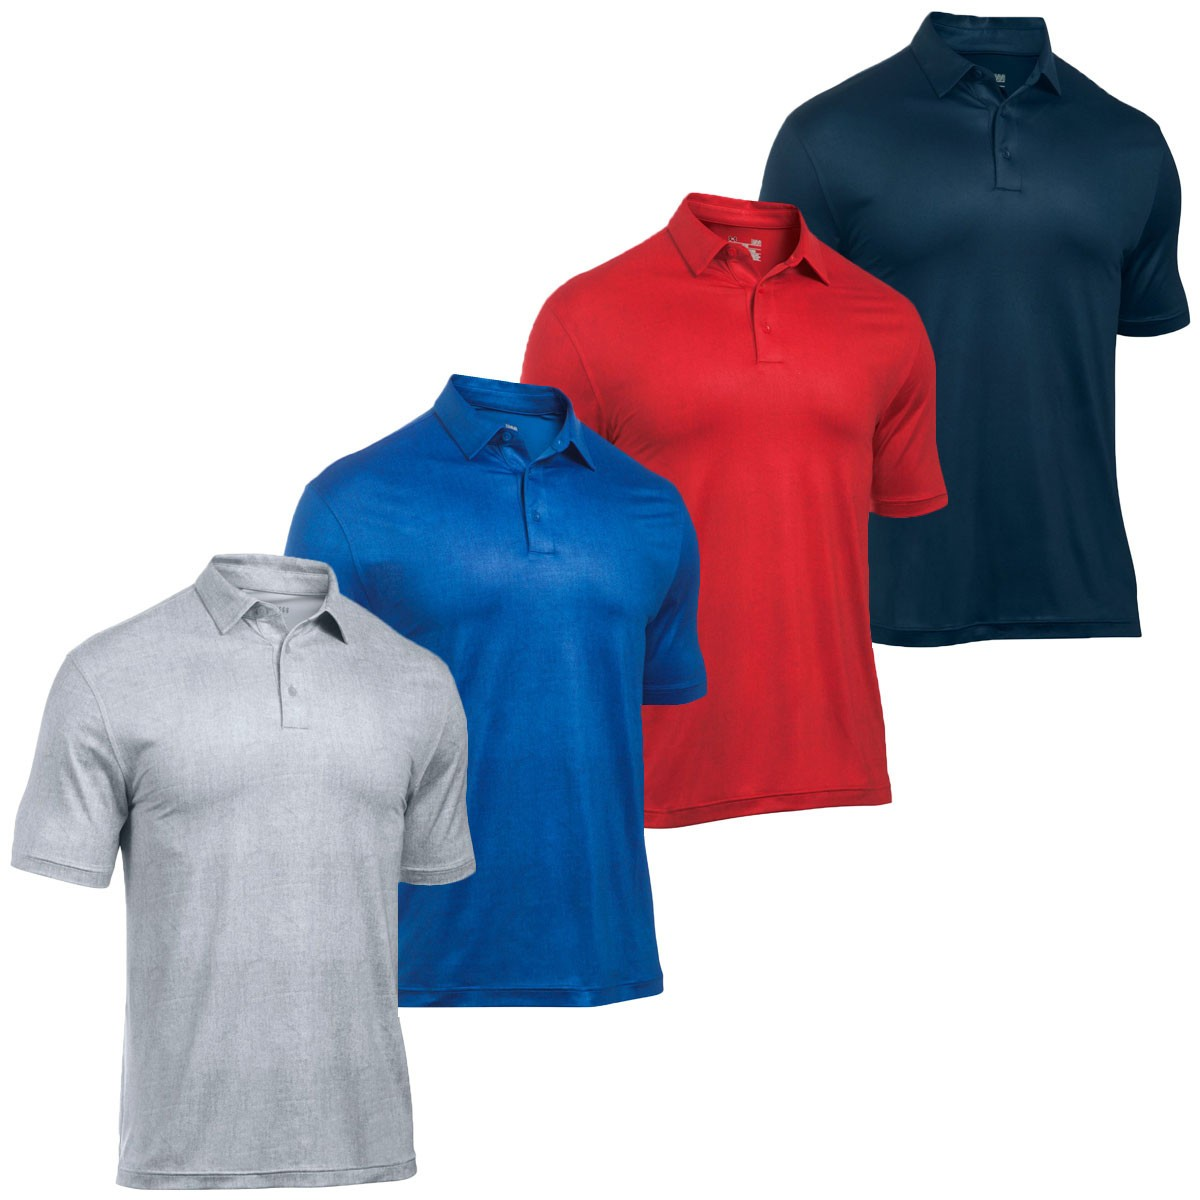 73d96fda61 ... Under Armour Mens Crestable Playoff Tweed Golf Polo Shirt. < Back.  1290221